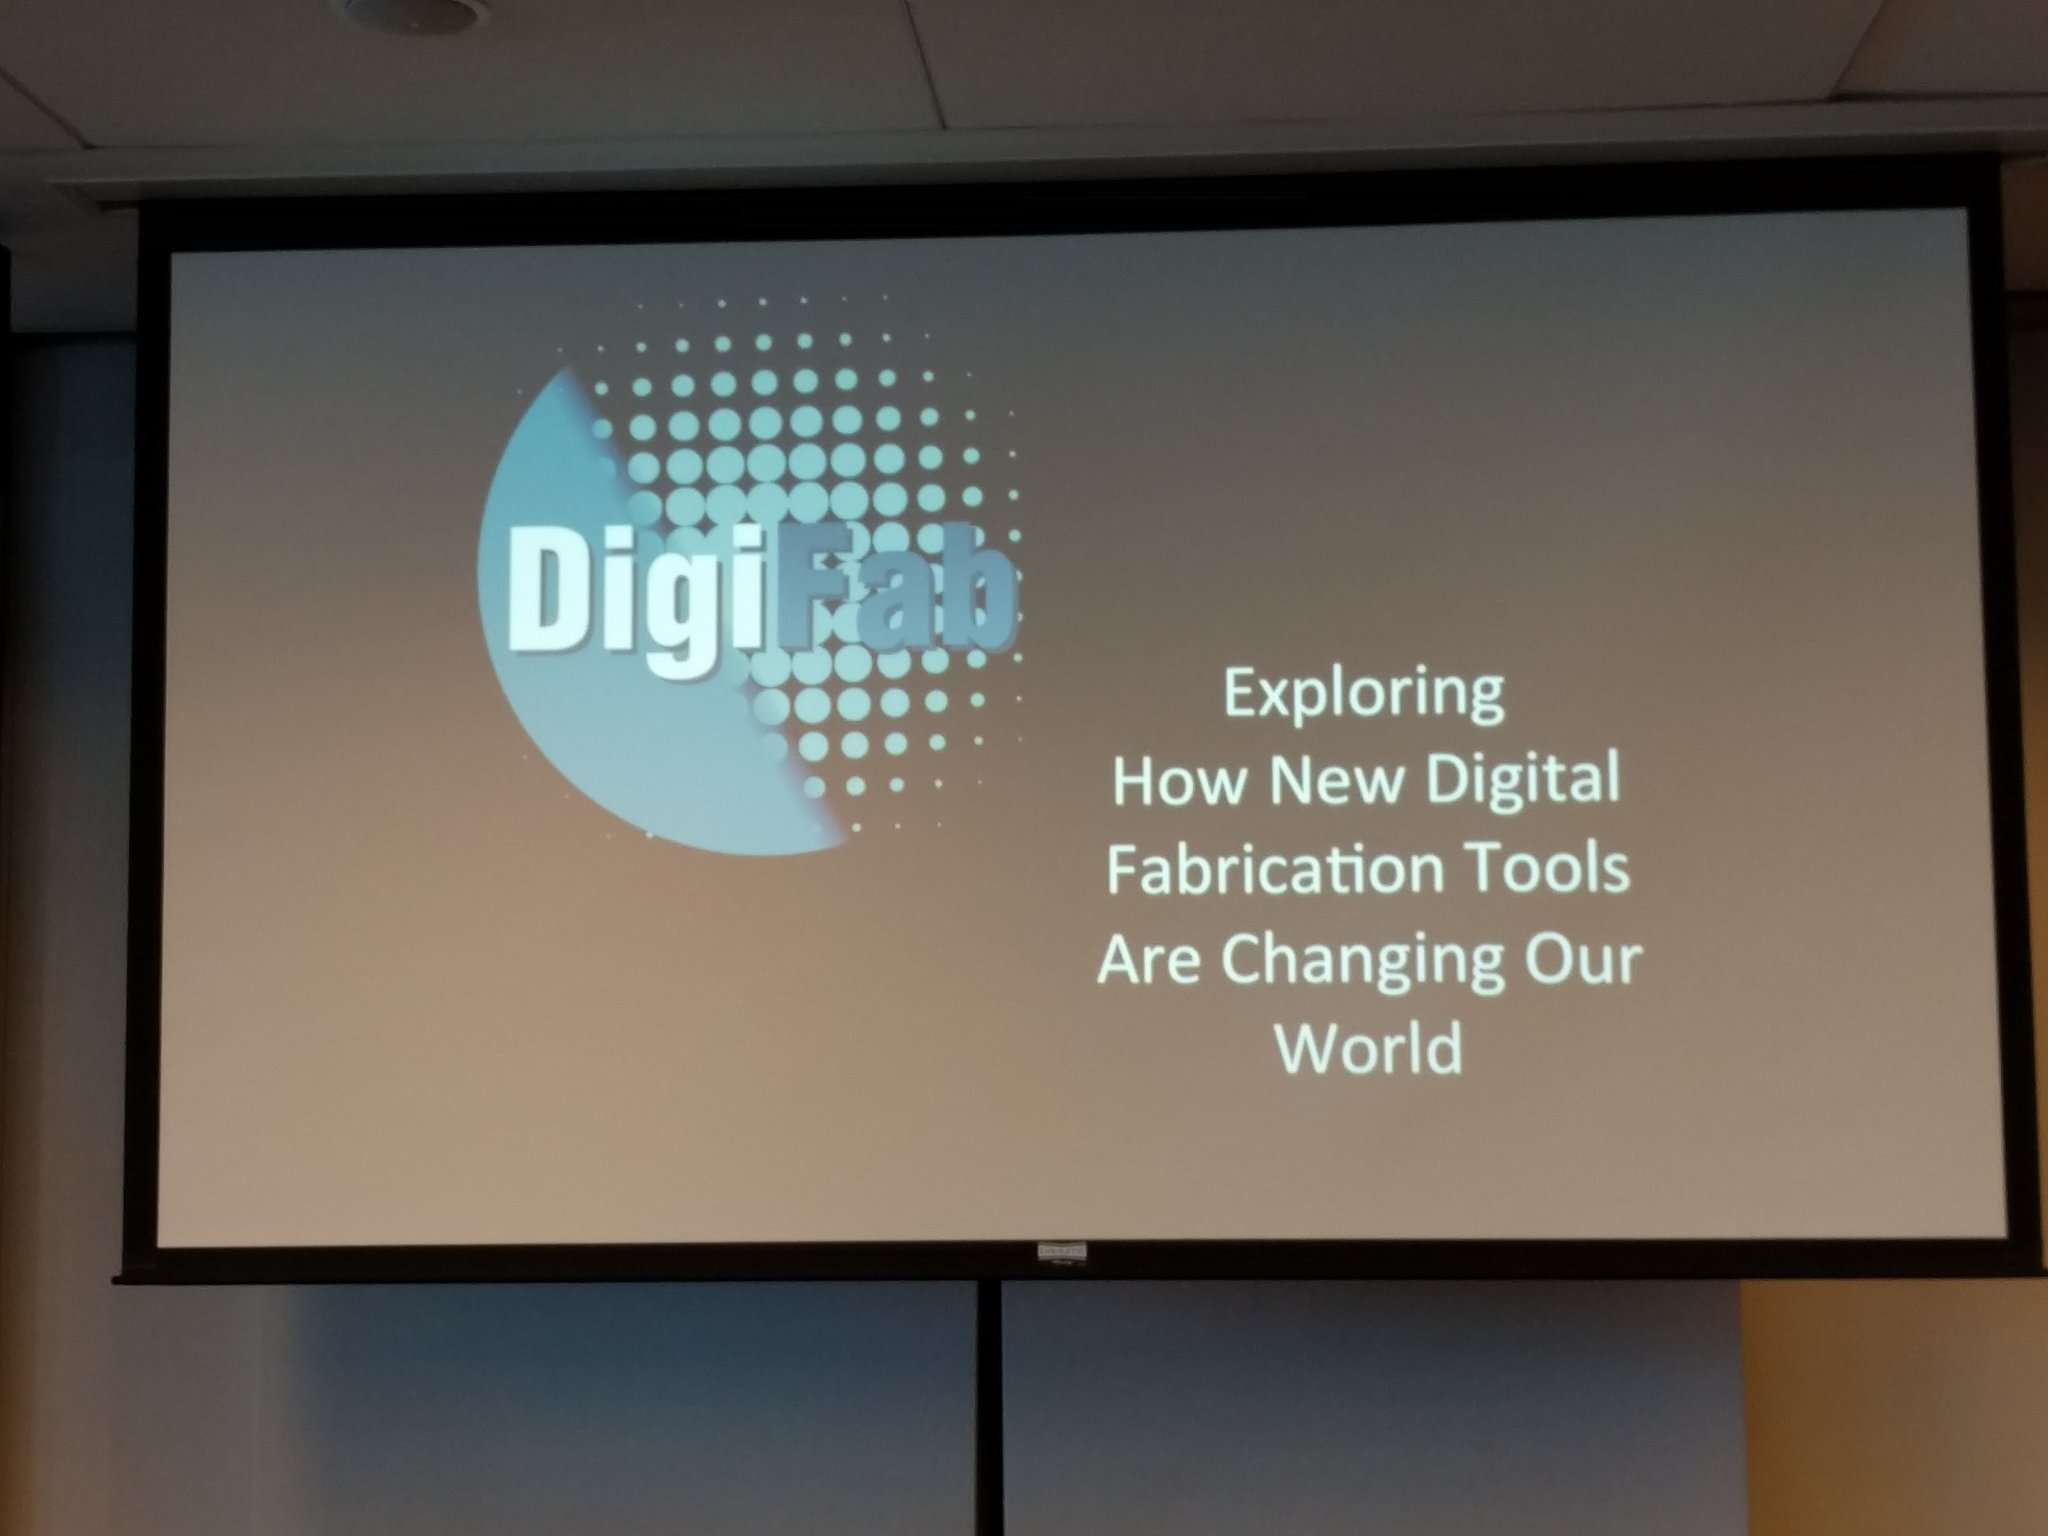 At #digifabcon in Cambridge the next two Days https://t.co/C1GU6iSZio